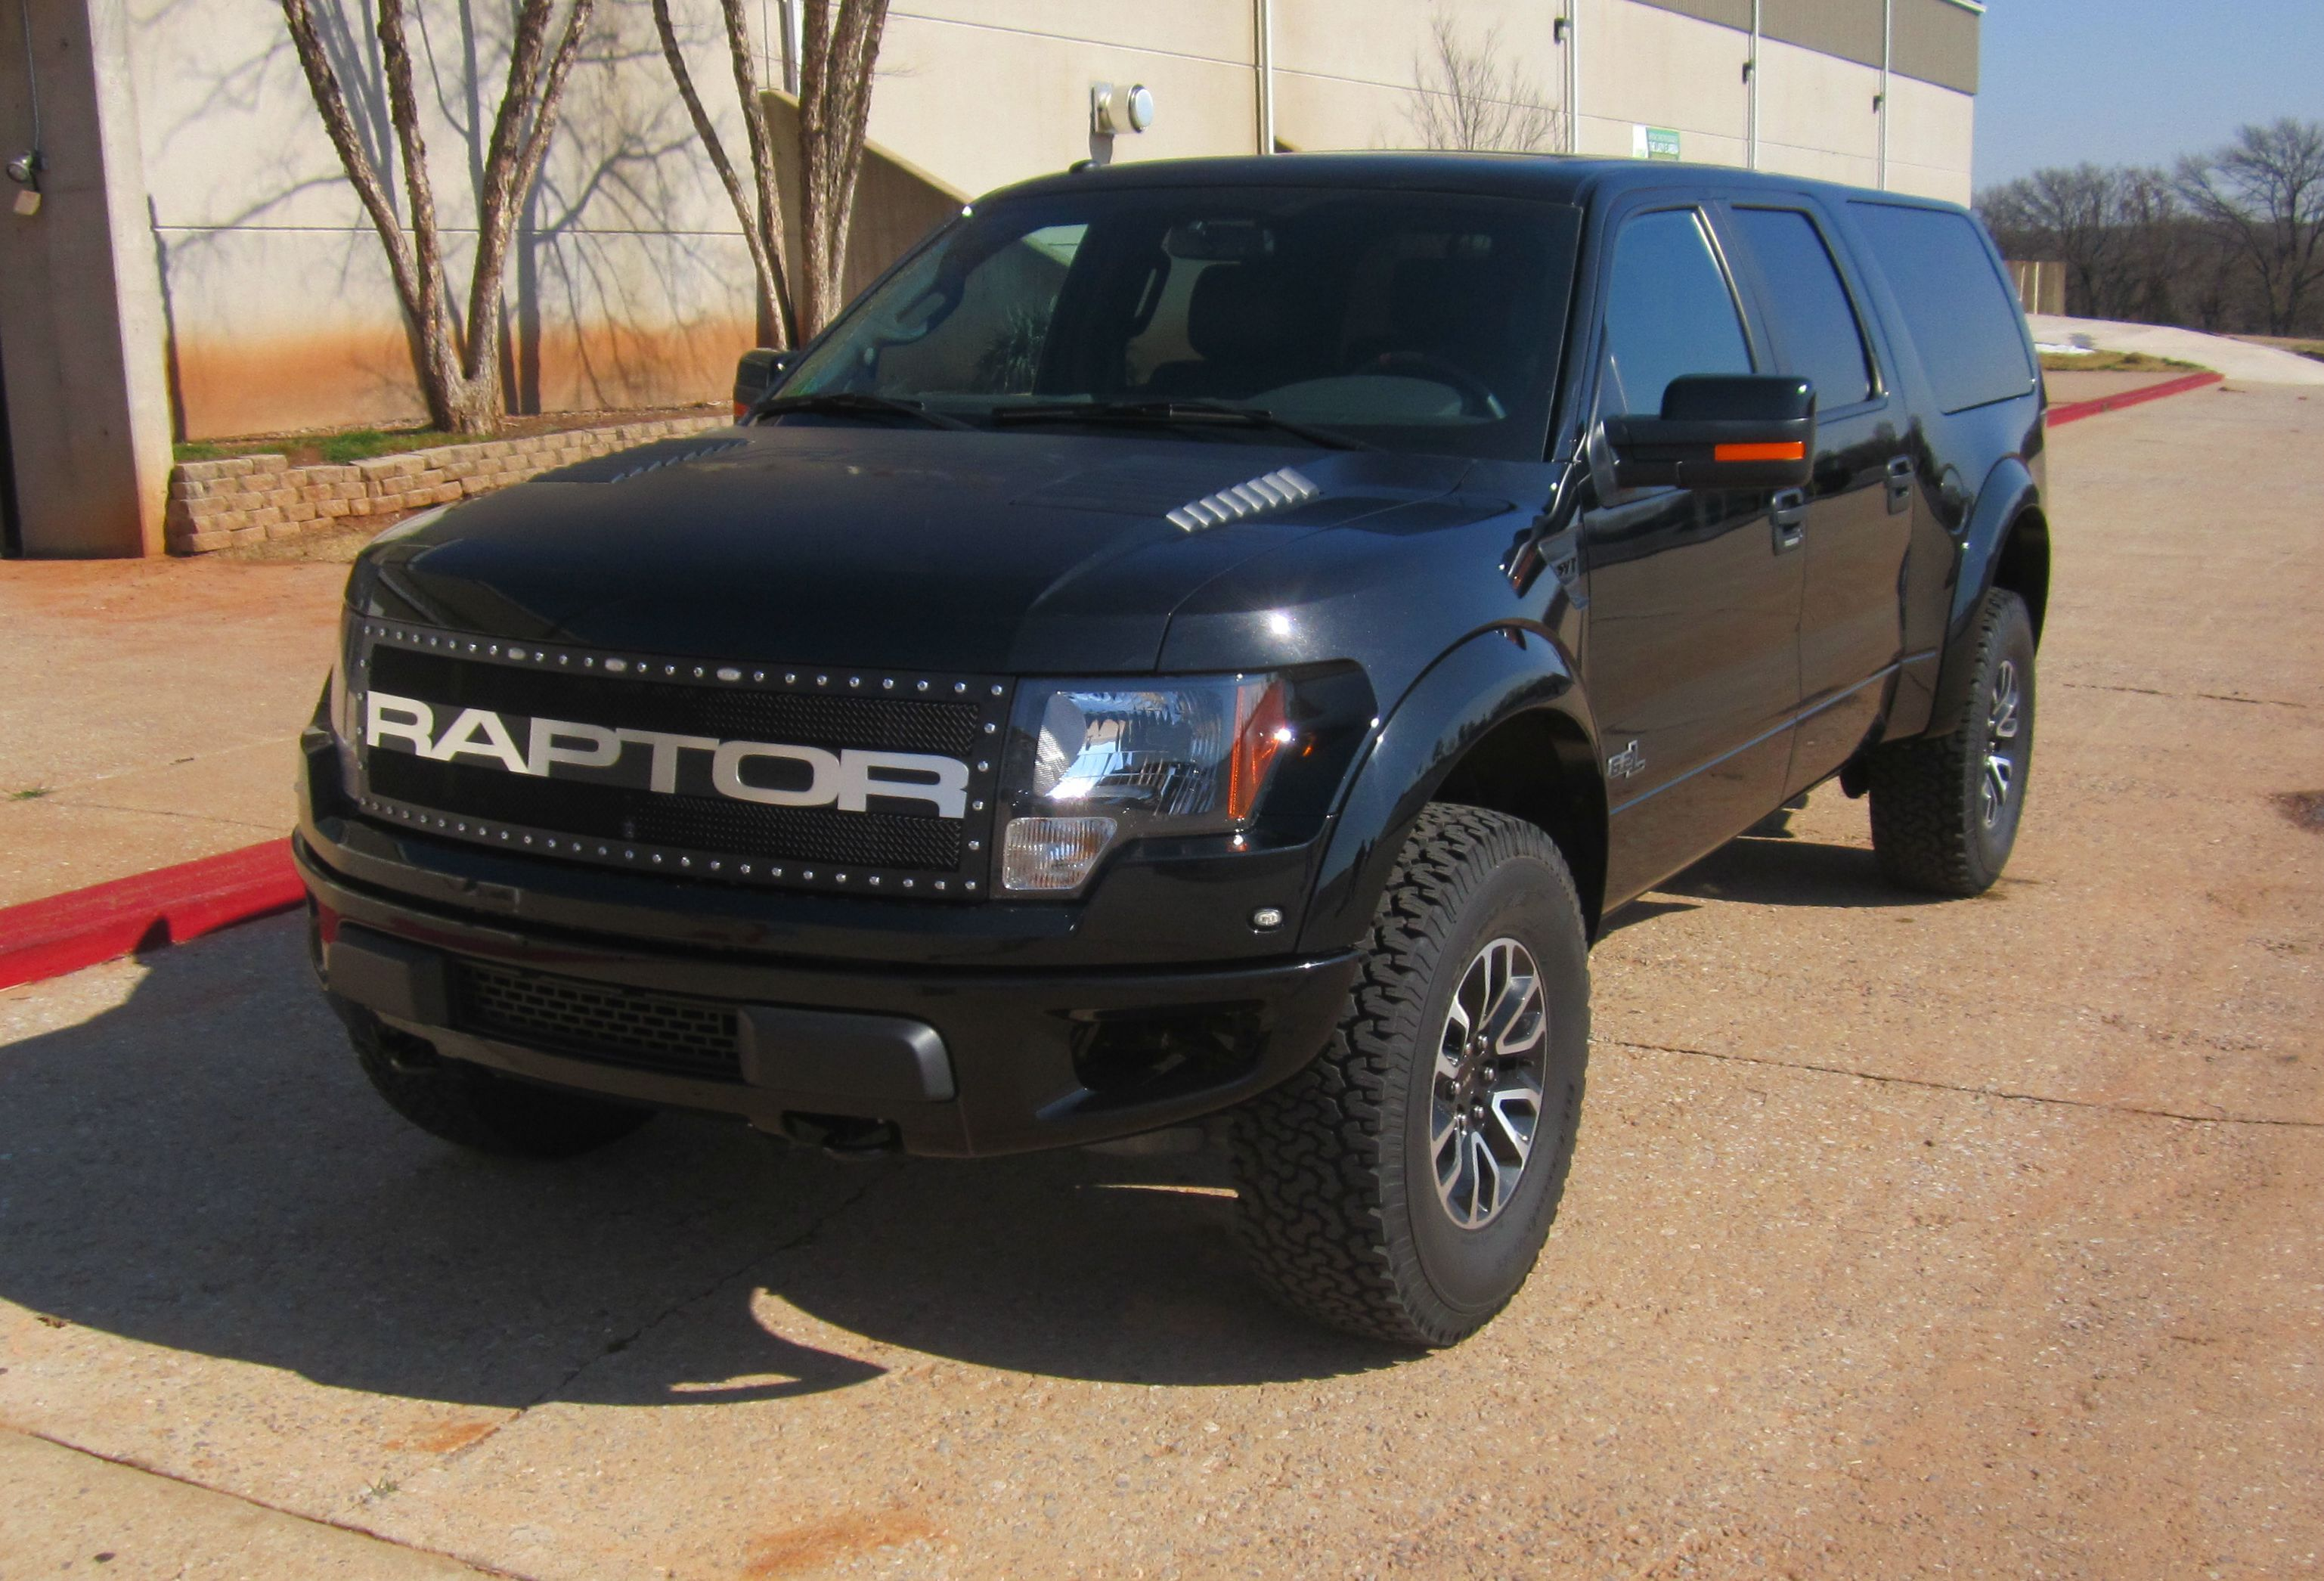 Ford Raptor Suv Conversion Suv Ford Raptor Ford Trucks